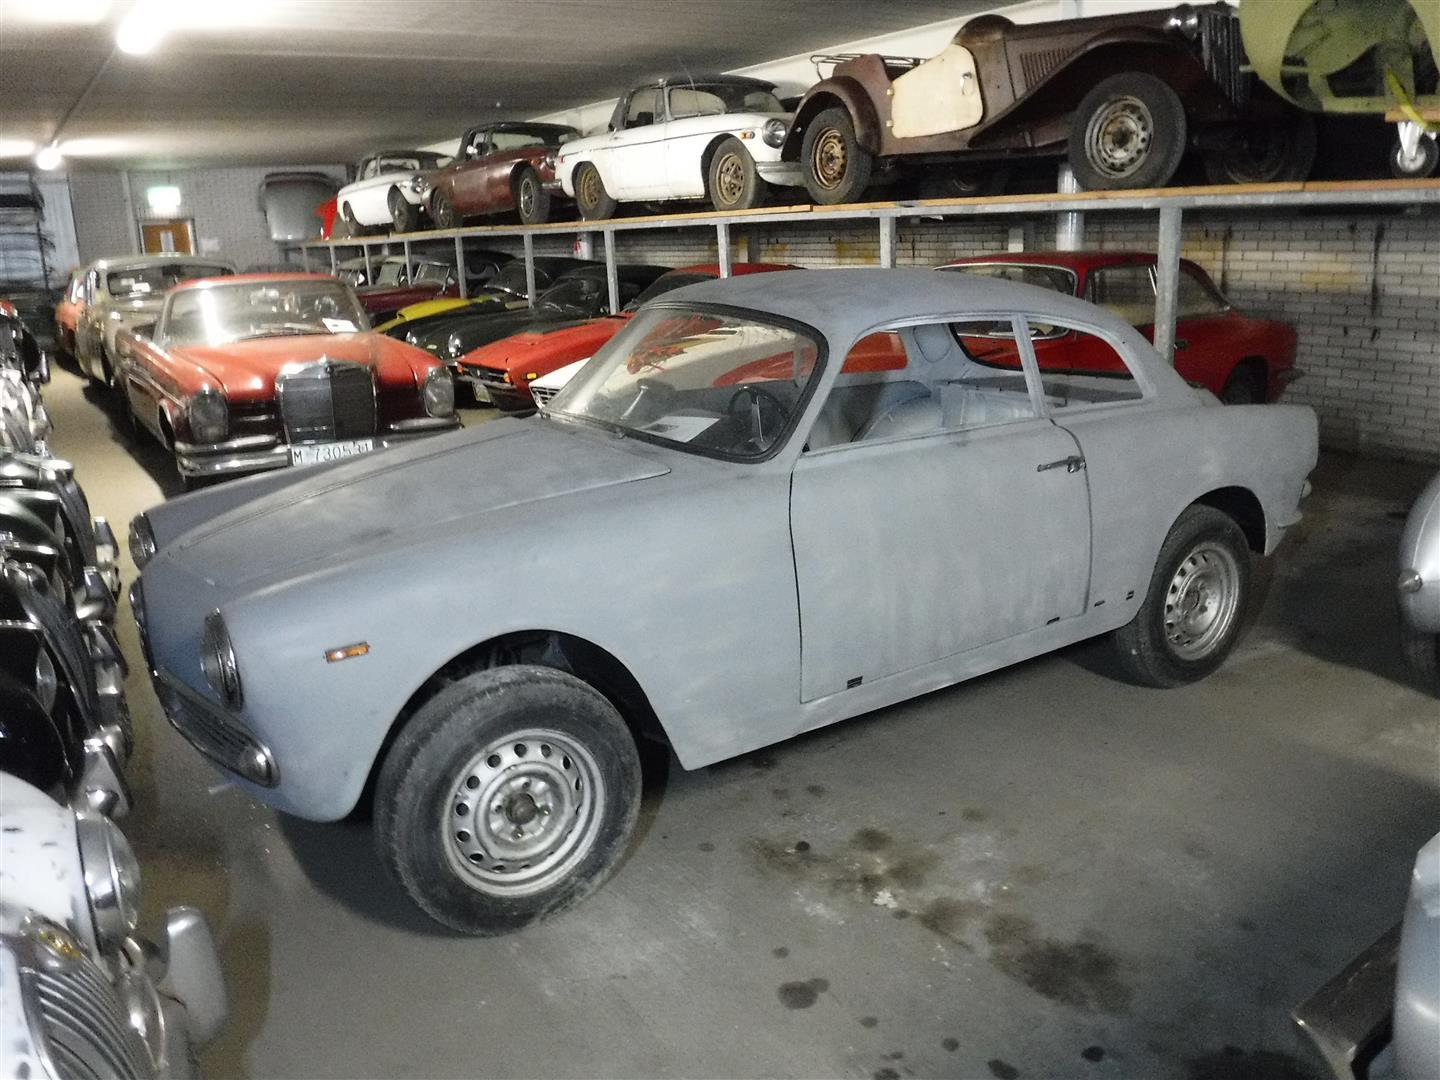 1964 Alfa Romeo 1300 Sprint '64 (to restore!) For Sale (picture 1 of 6)